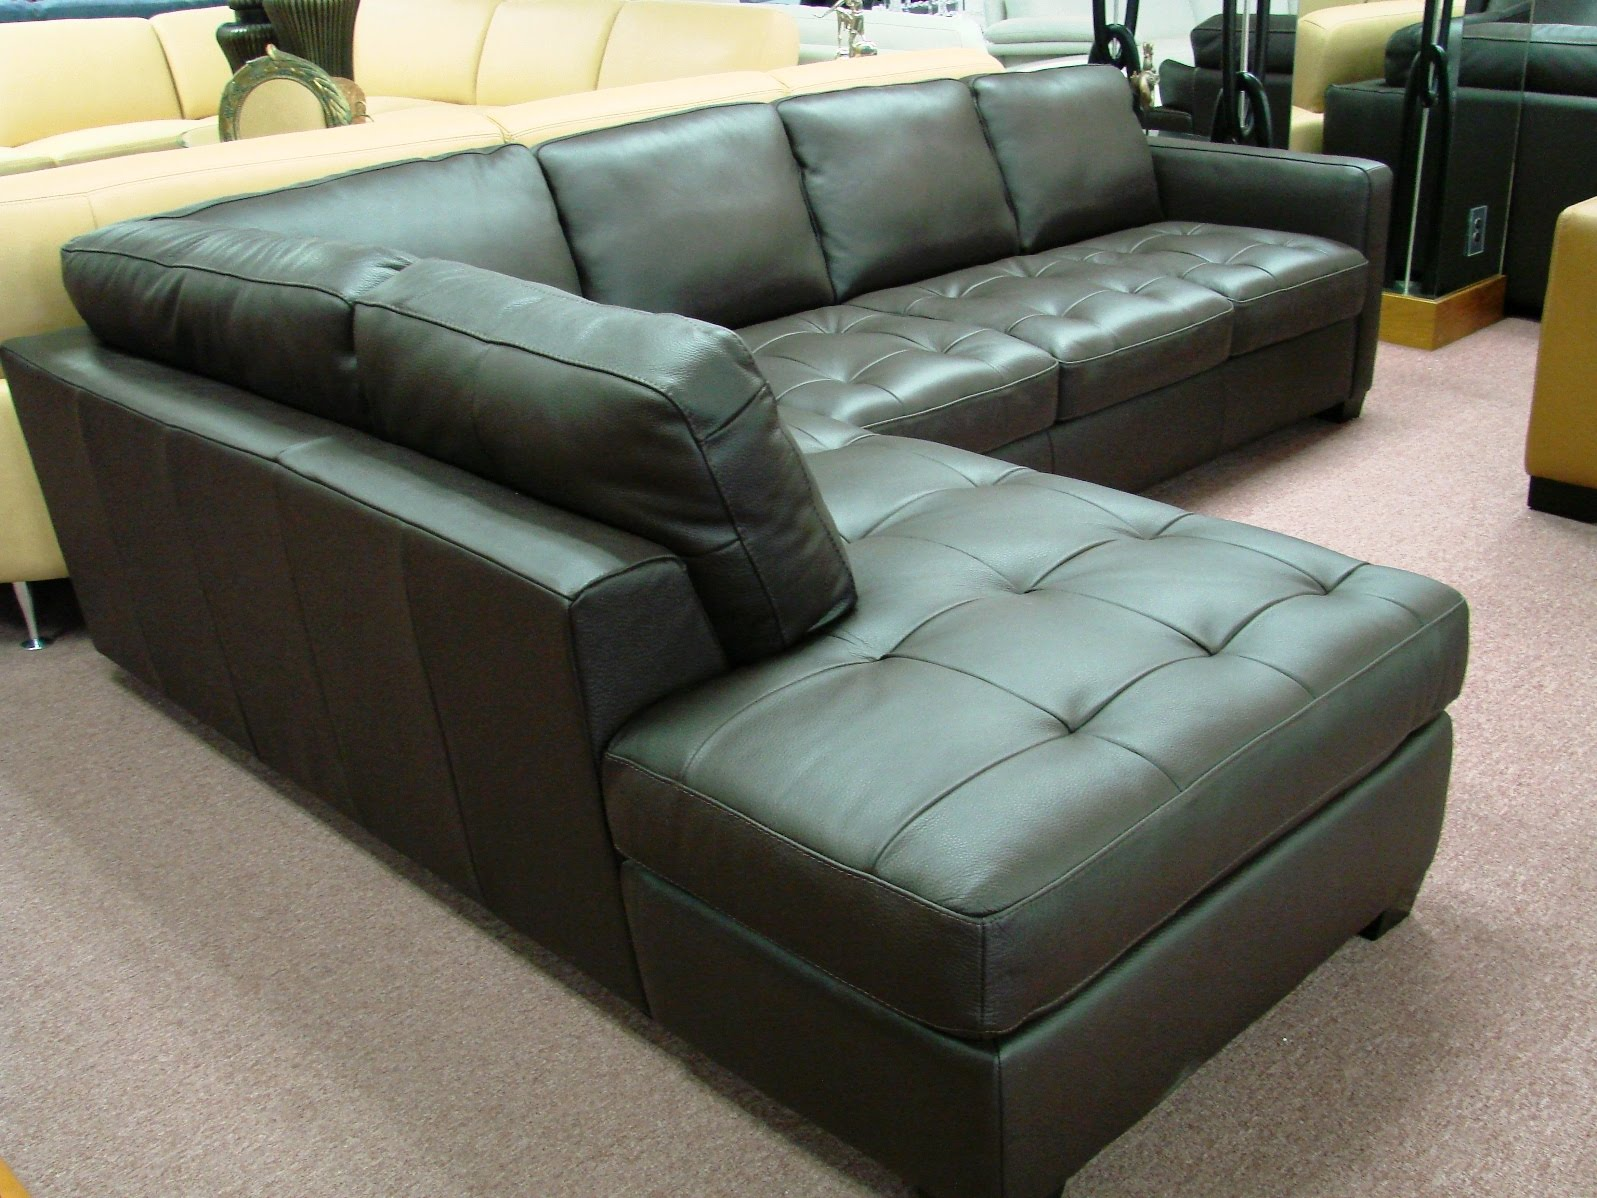 Natuzzi leather sofas sectionals by interior concepts furniture mother 39 s day sale on leather - Sofas natuzzi ...